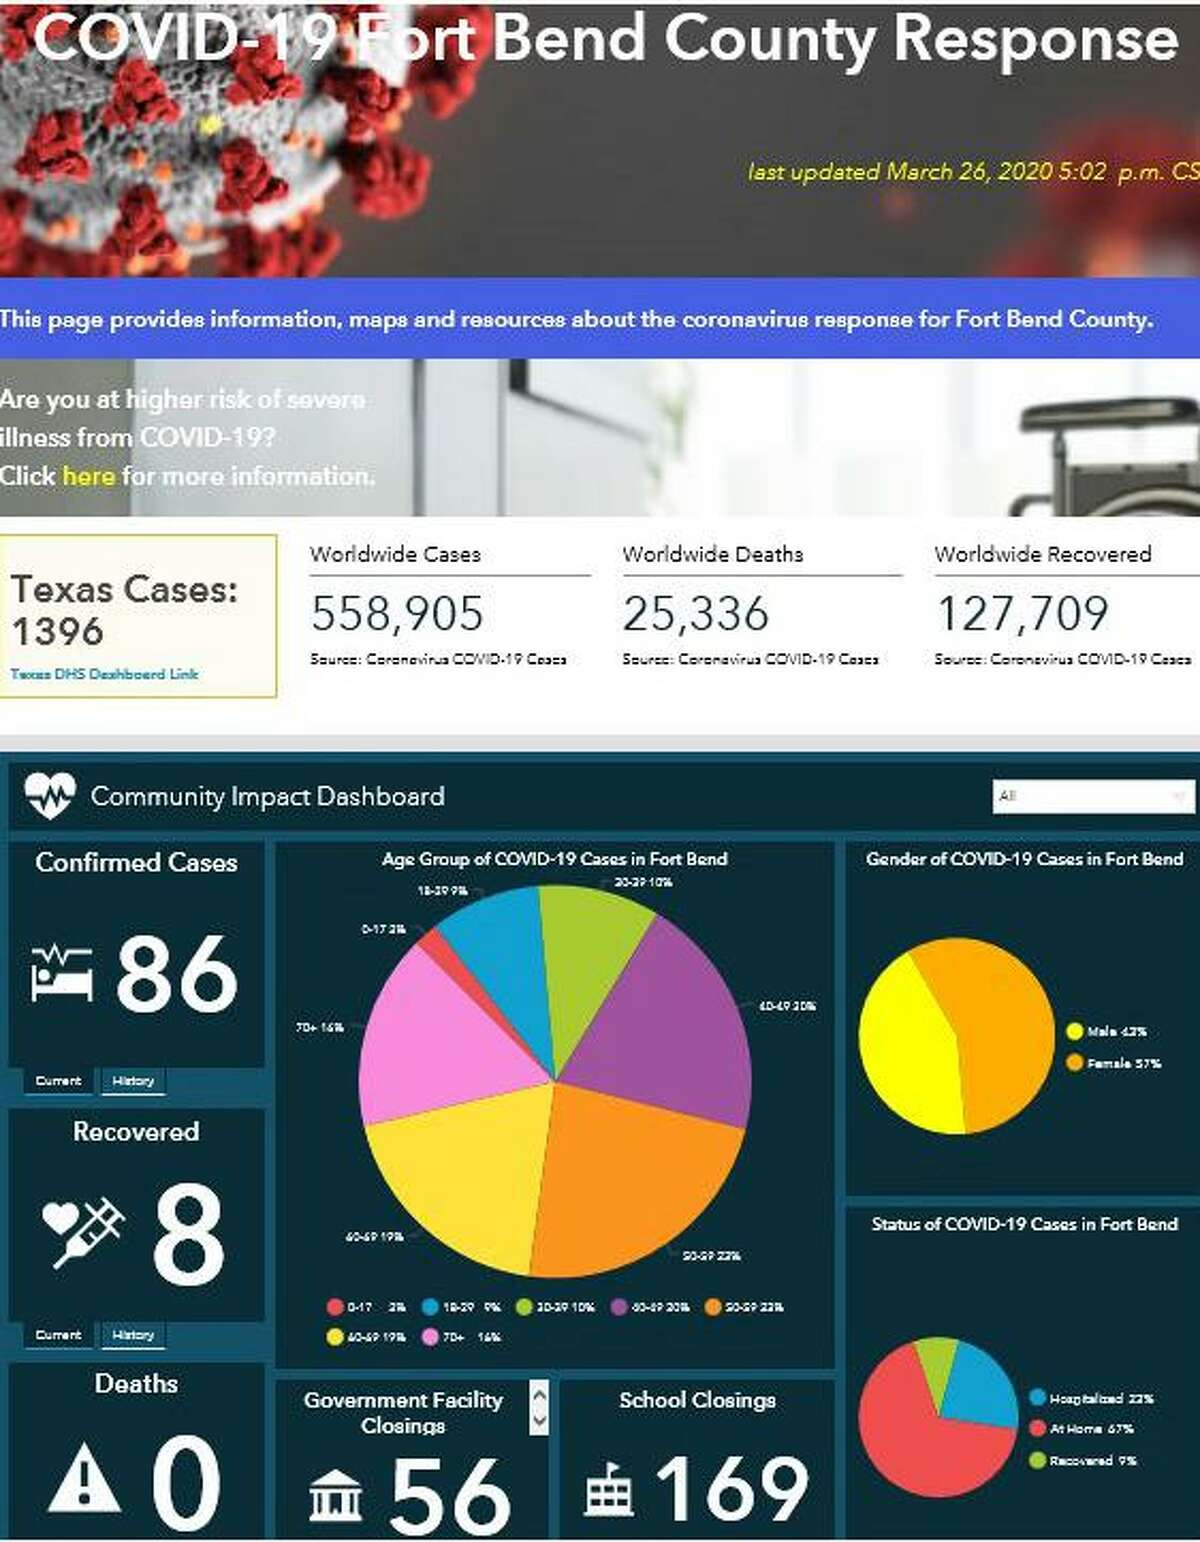 Fort Bend County officials recently unveiled a new COVID-19 information and resource website.